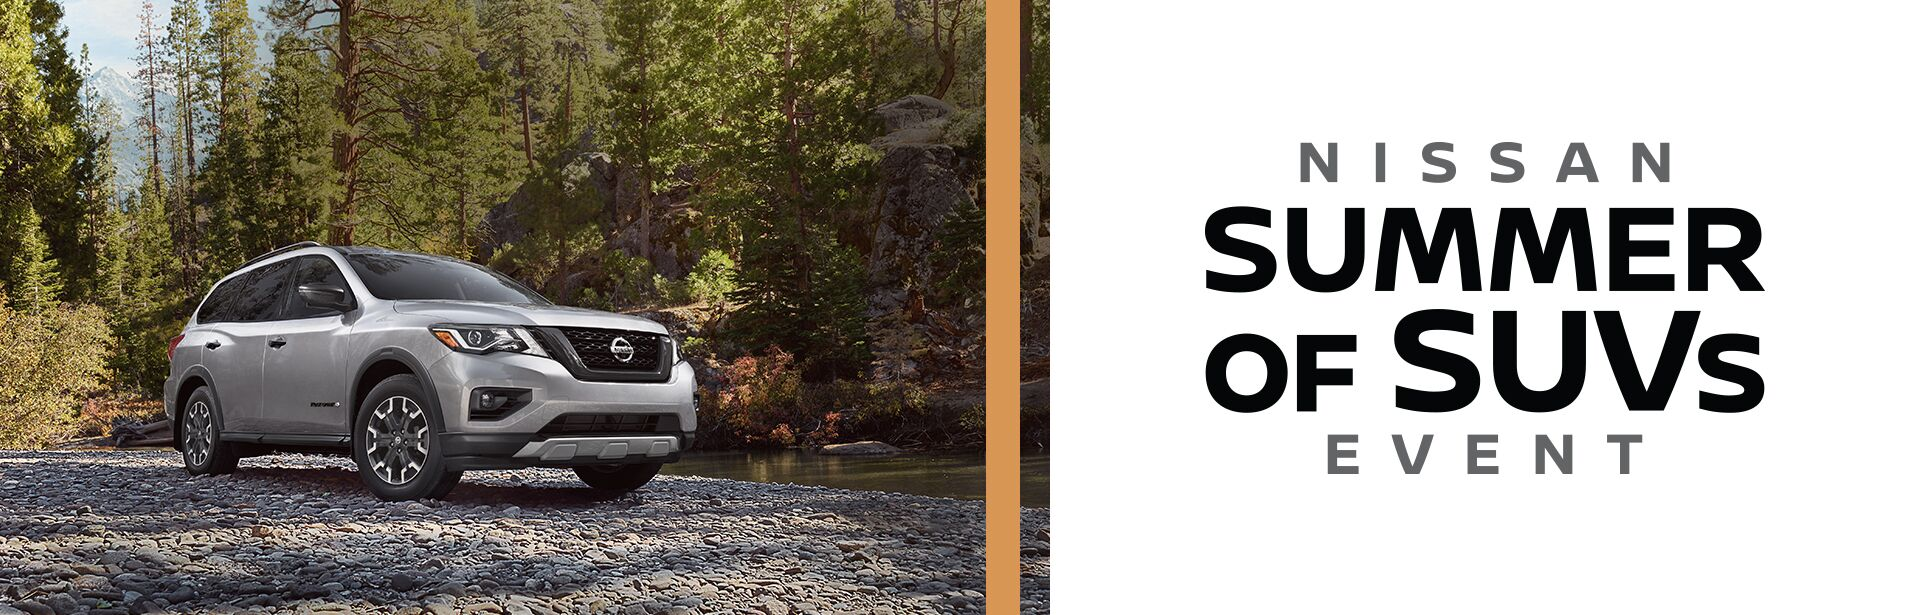 Nissan Summer of SUVs Event